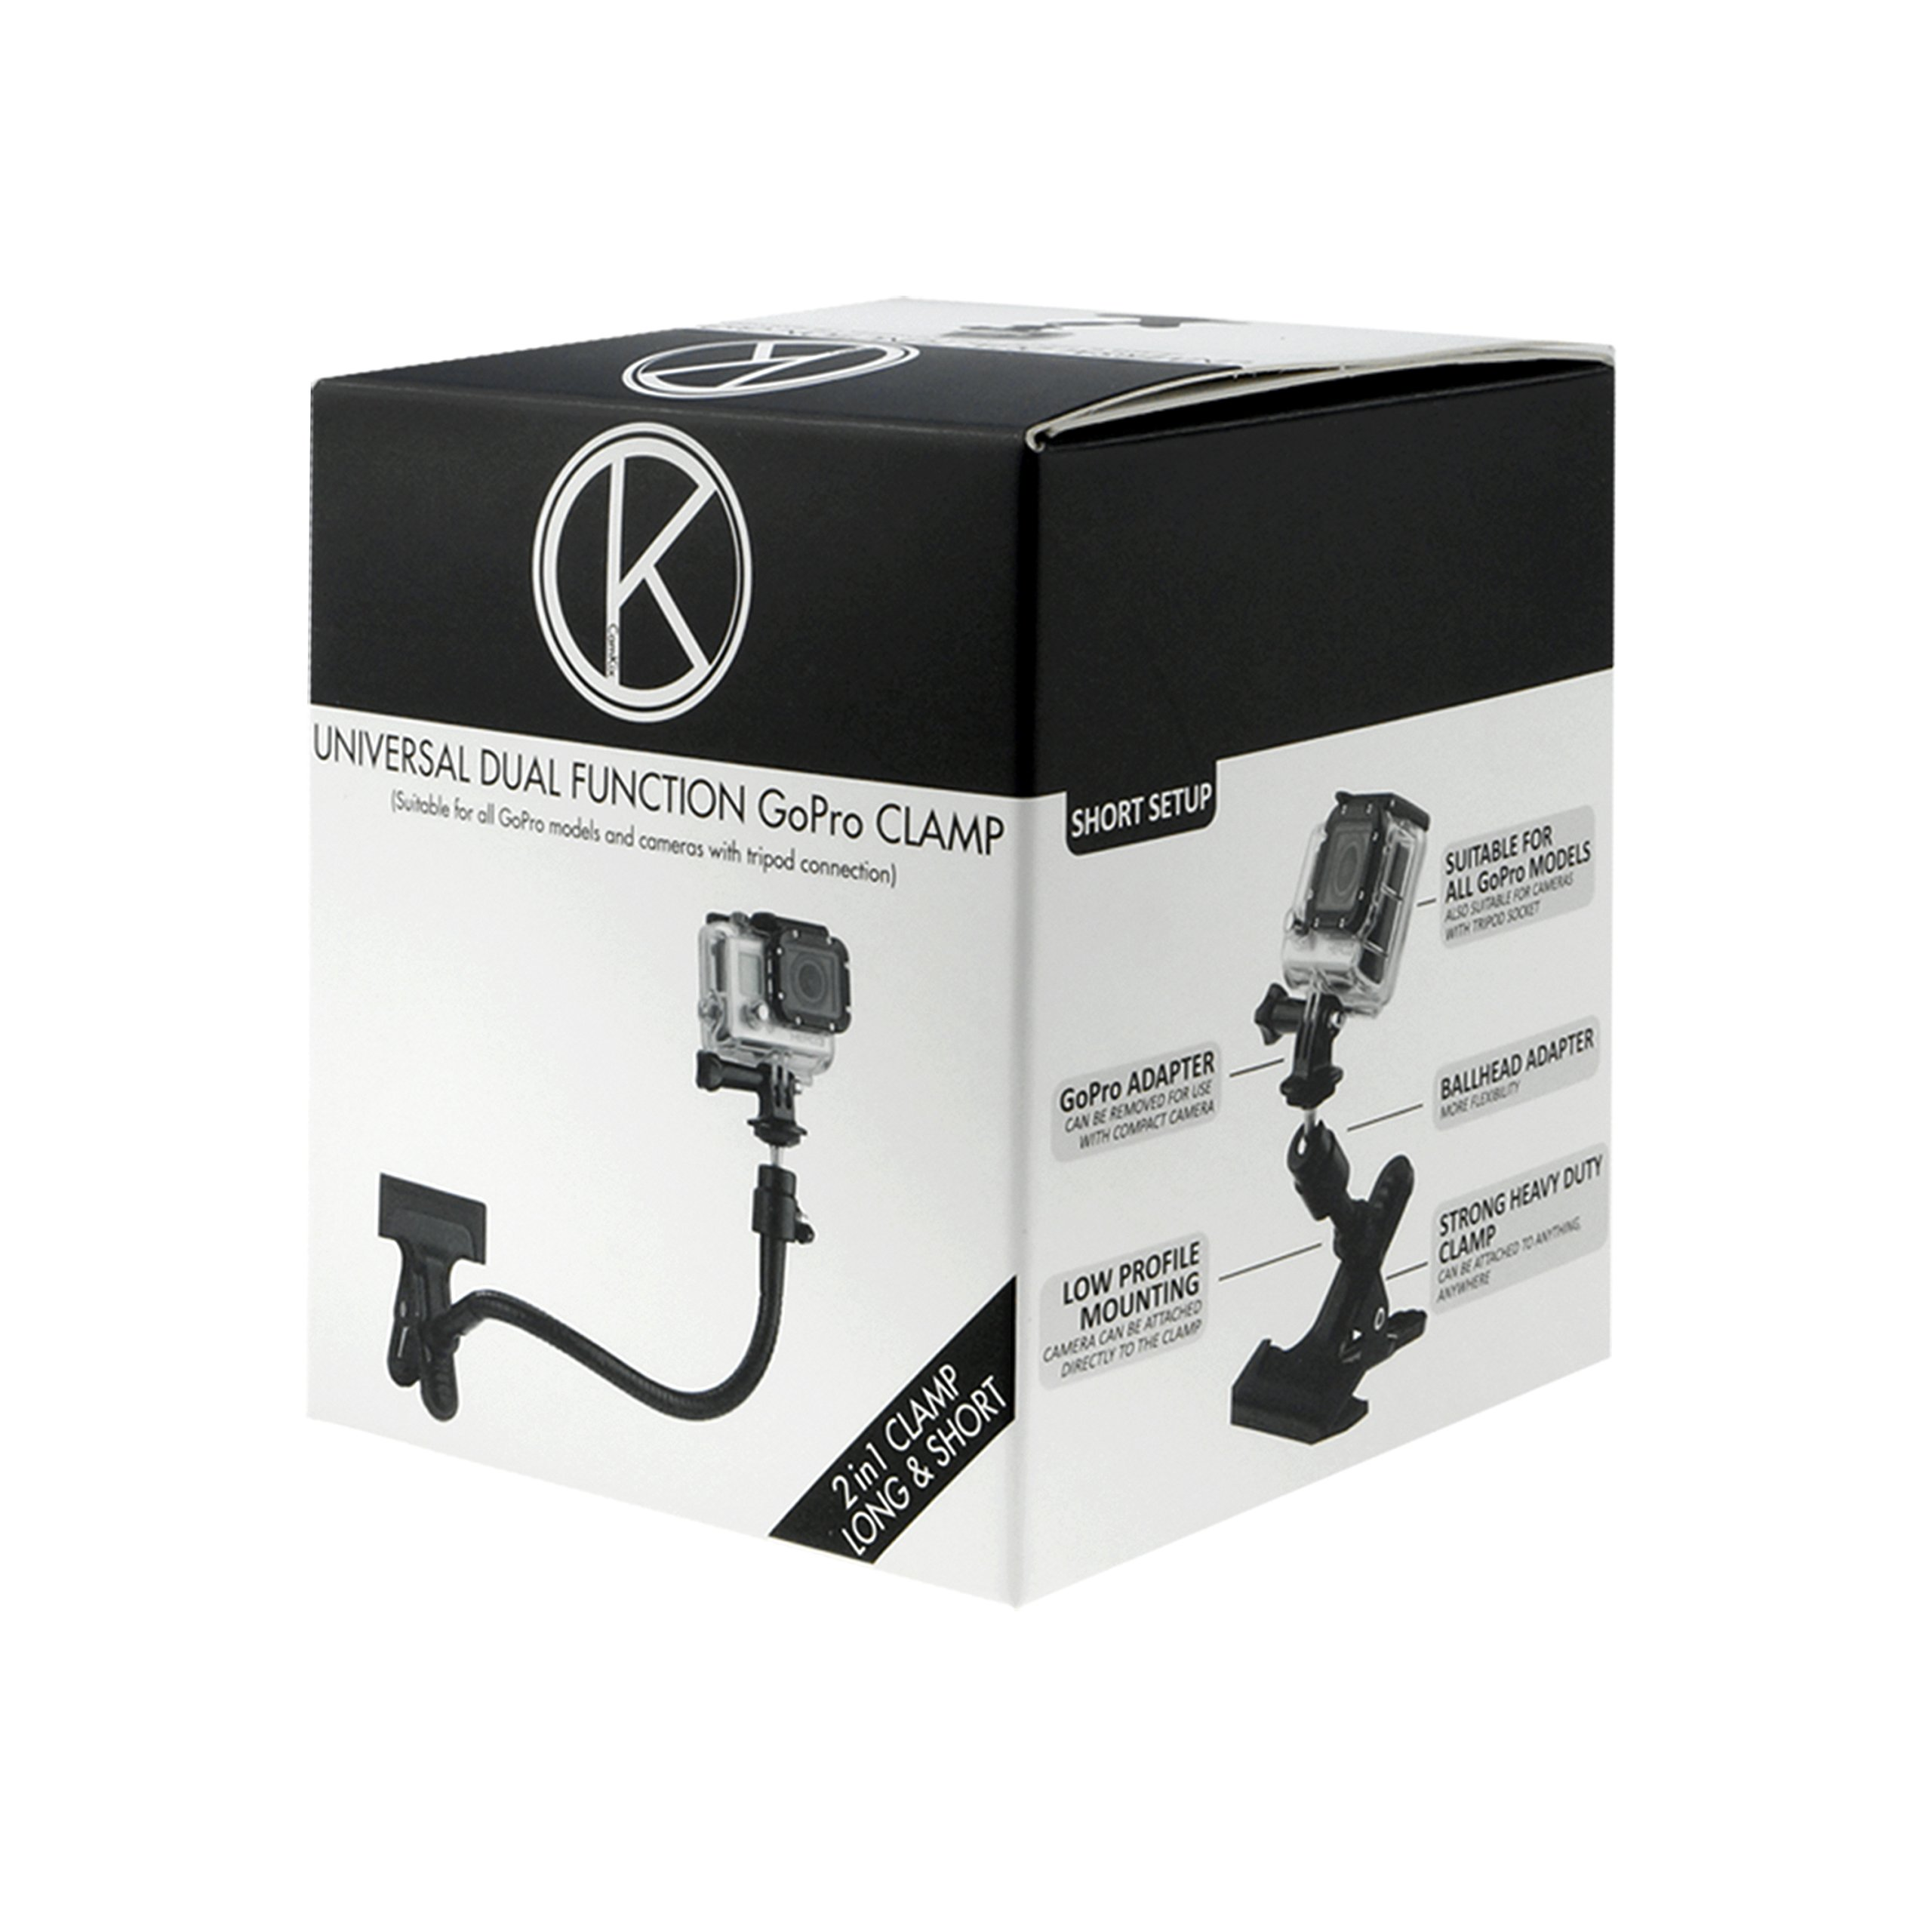 CamKix replacement Clamp Mount compatible with Gopro Hero 6, 5 Black, Session, Hero 4, Session, Black, Silver, Hero+ LCD, 3+, 3, 2, 1 and Compact Cameras (Clamp Mount for Gopro Hero)